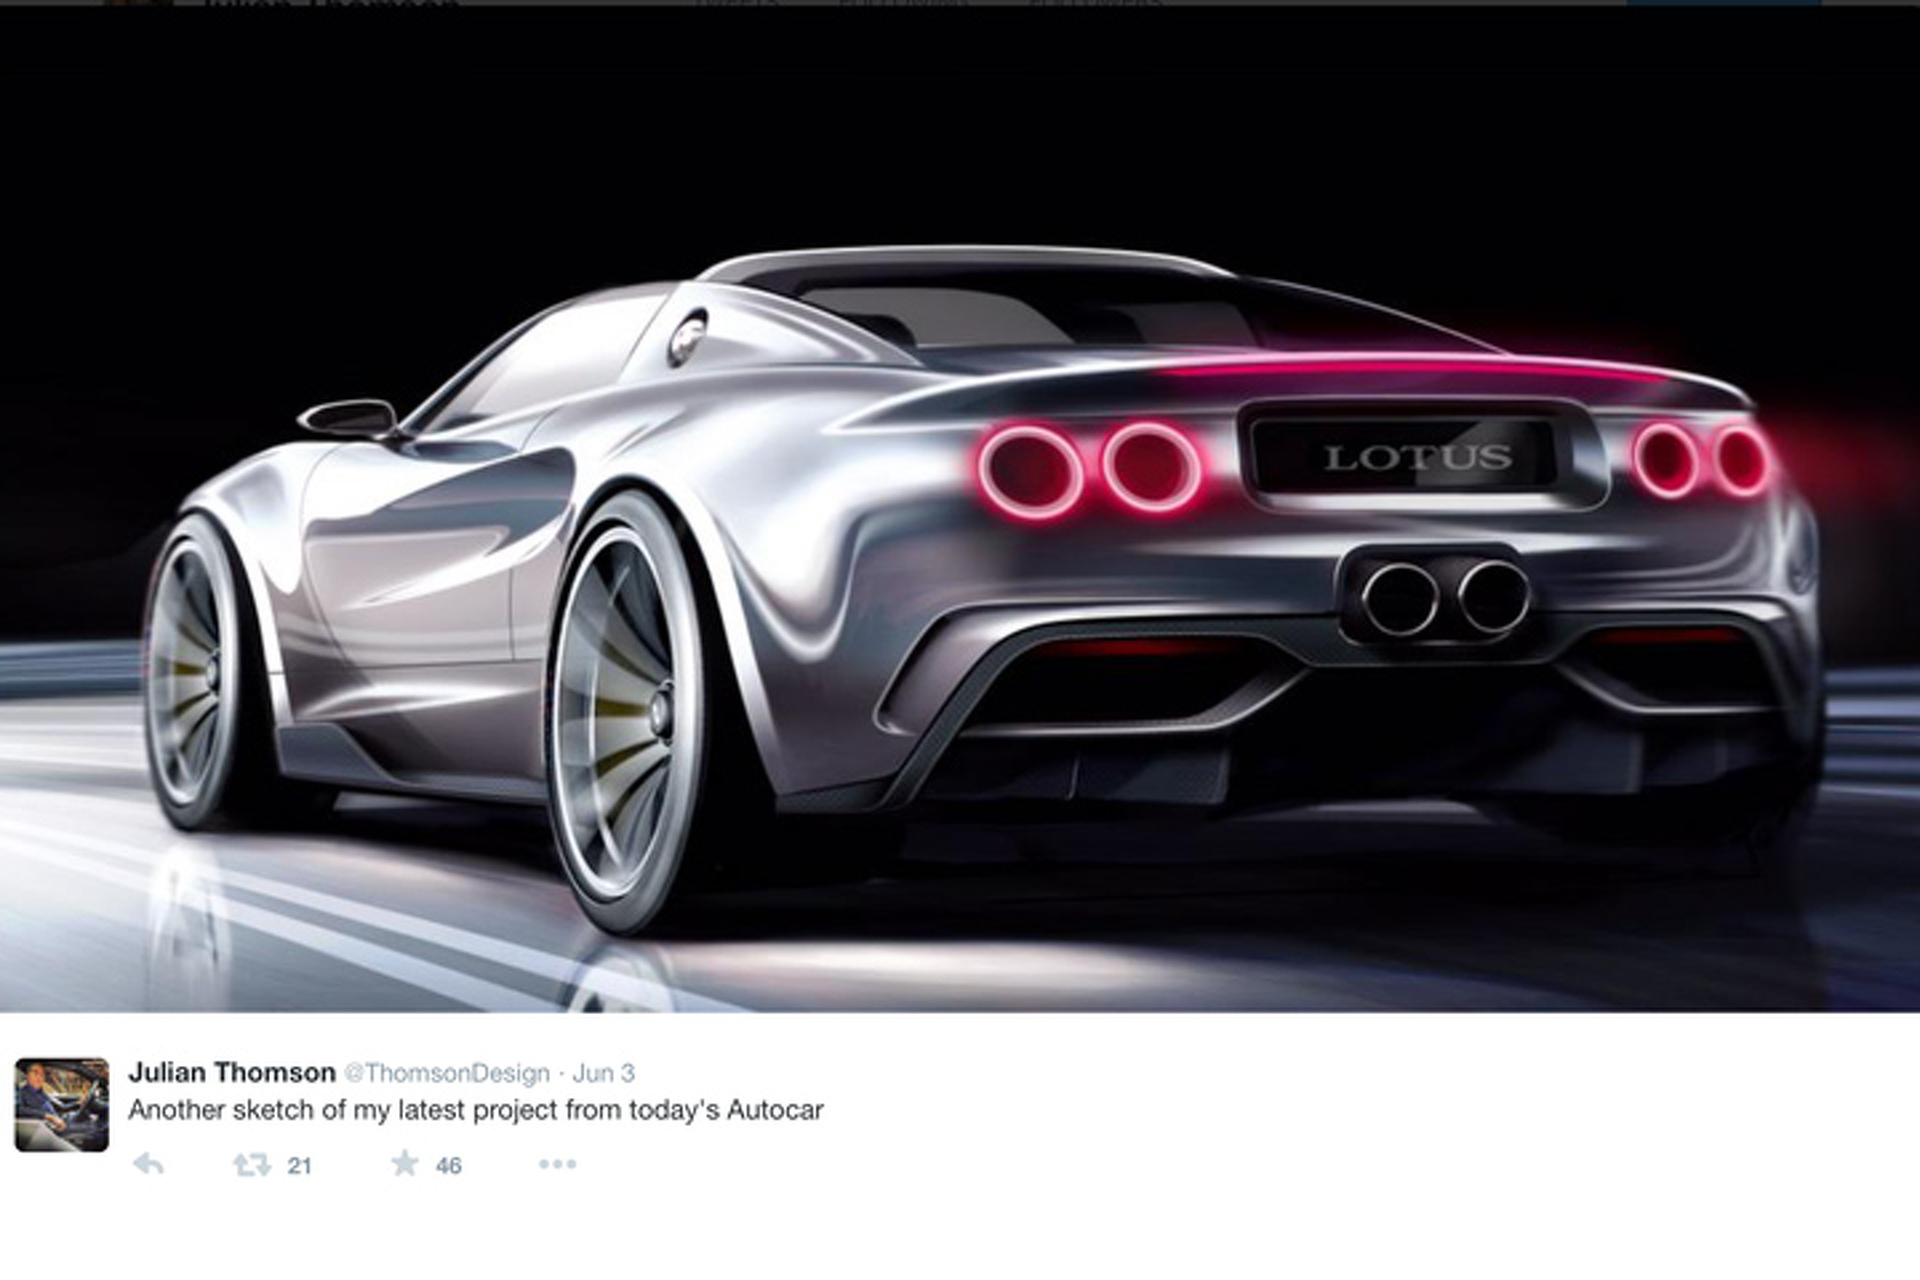 One Jaguar Designer Wants to Create a Lotus Super Elise